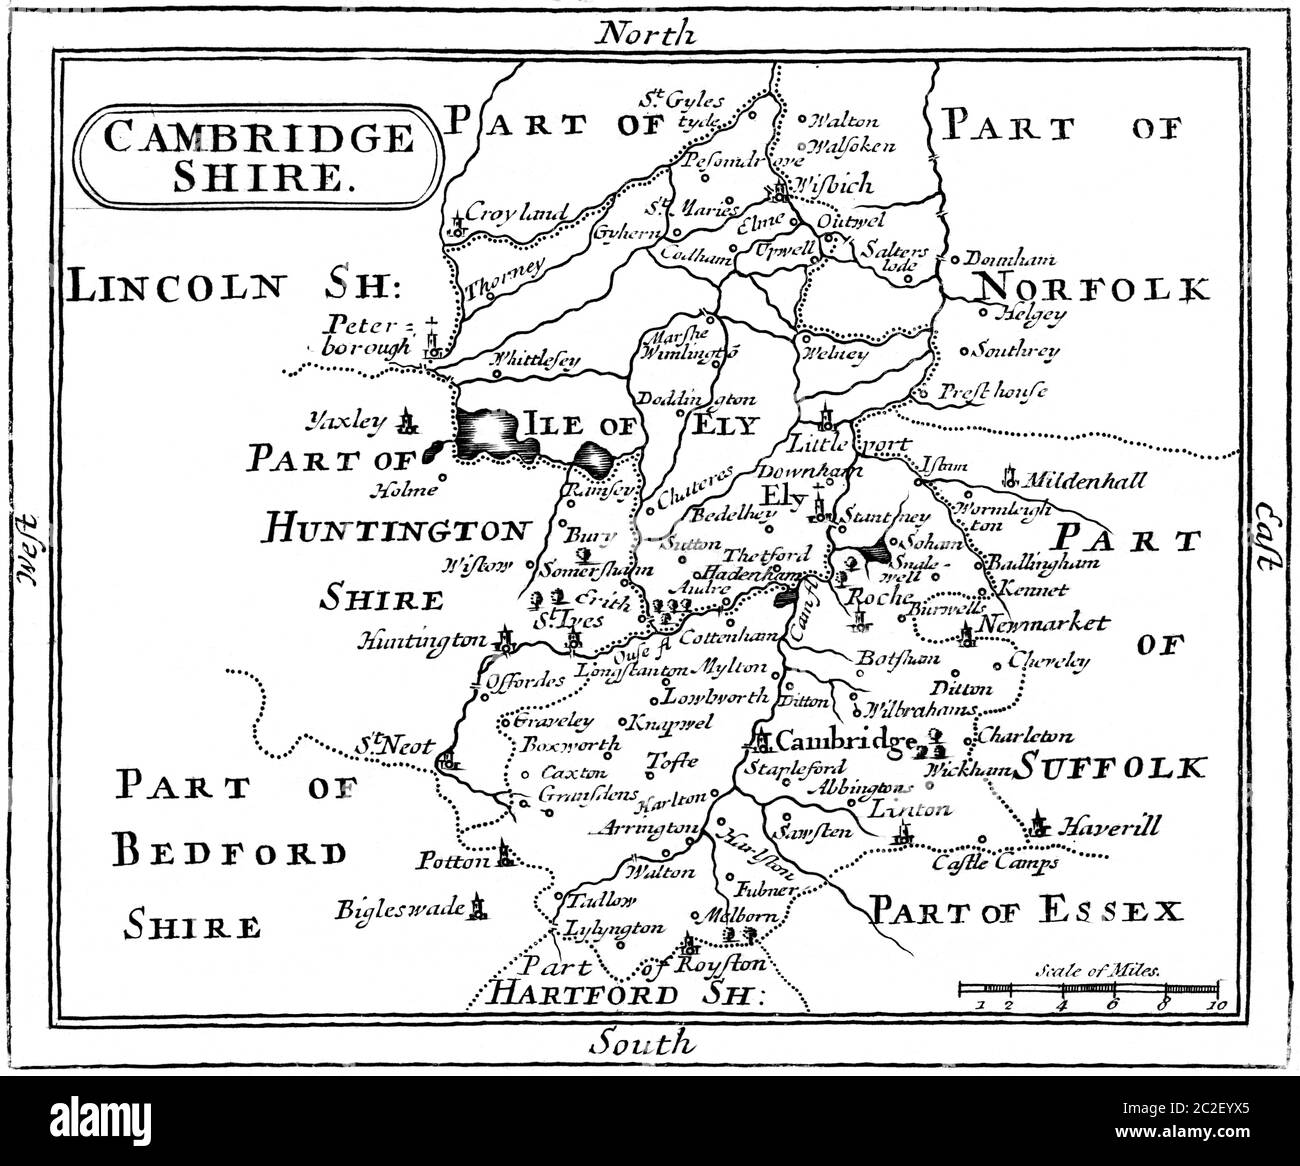 A Map of Cambridgeshire scanned at high resolution from a book published in the 1780s. This image is believed to be free of all copyright. Stock Photo